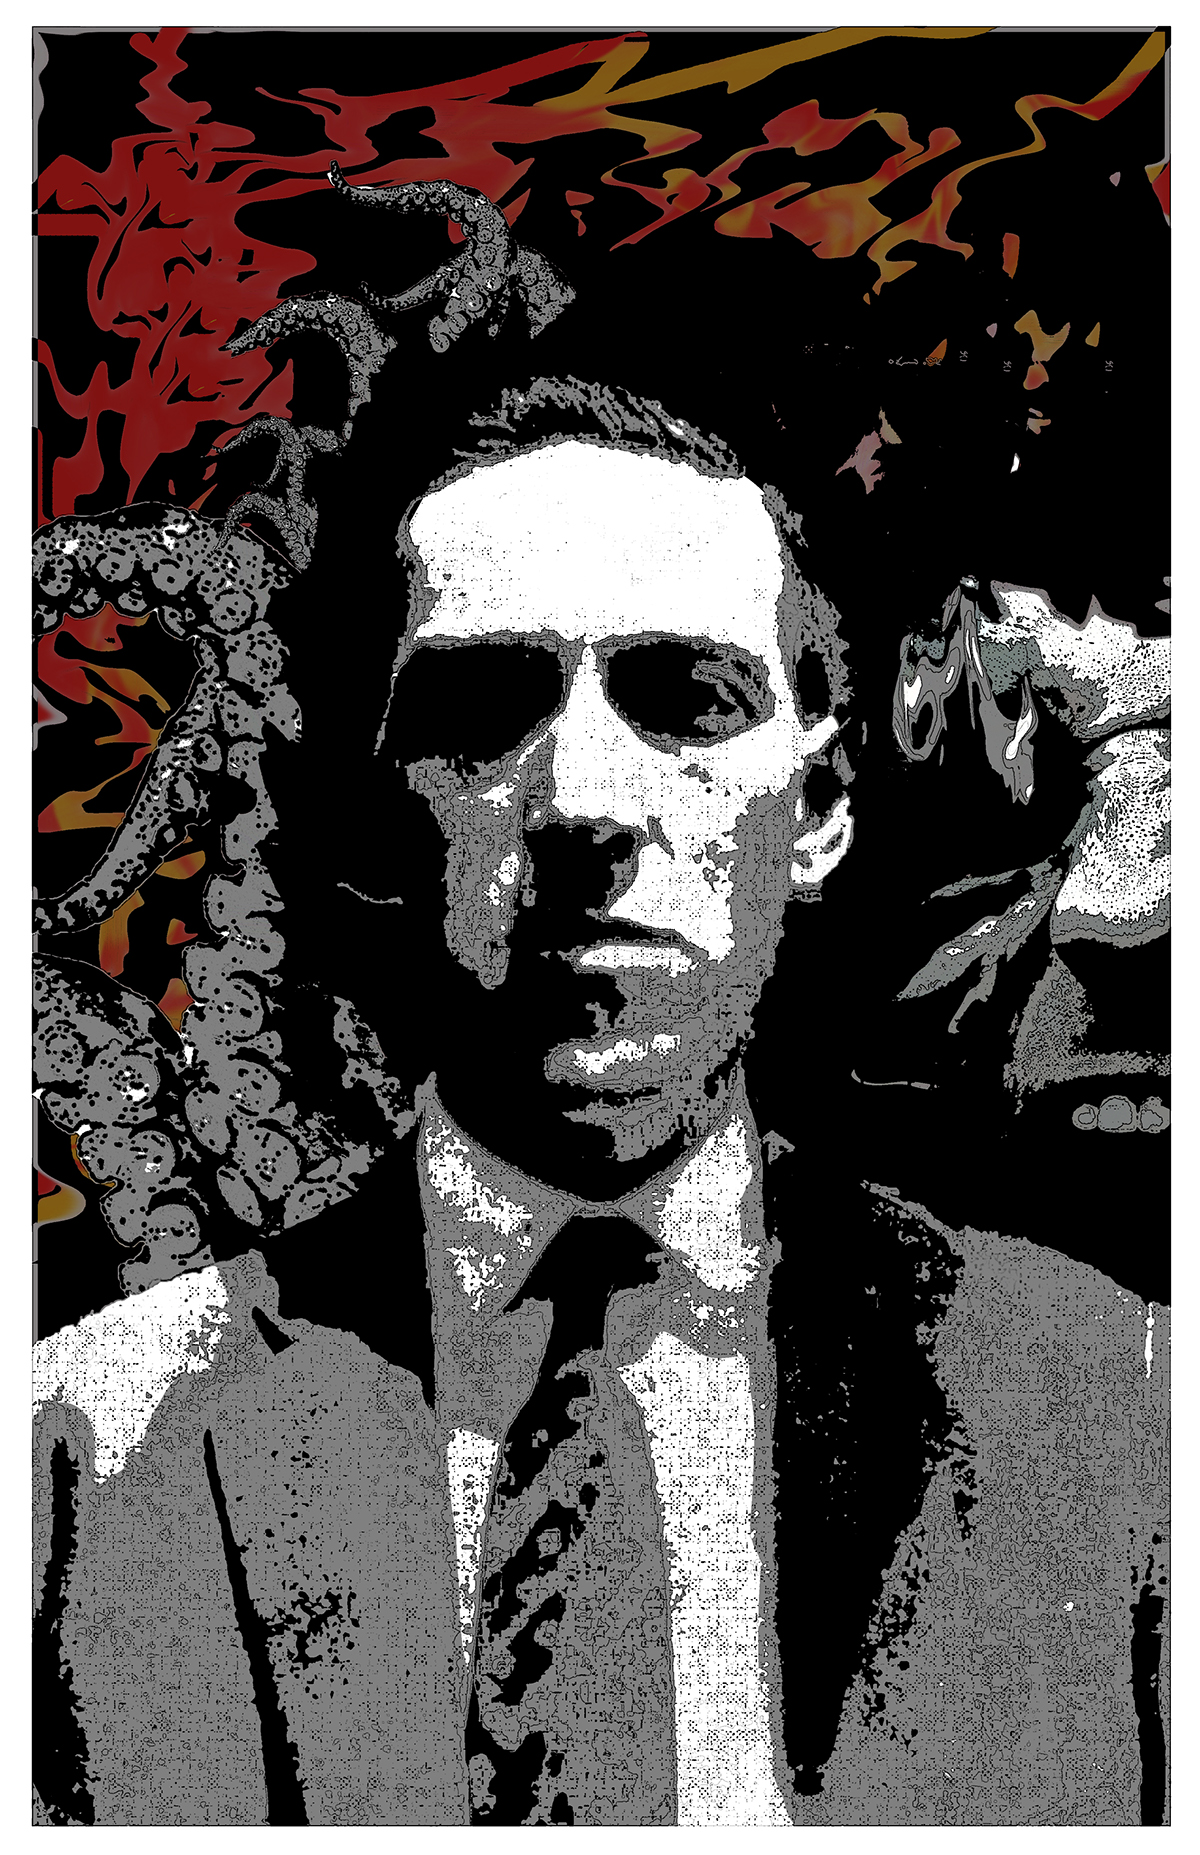 h p lovecraft illustration posters